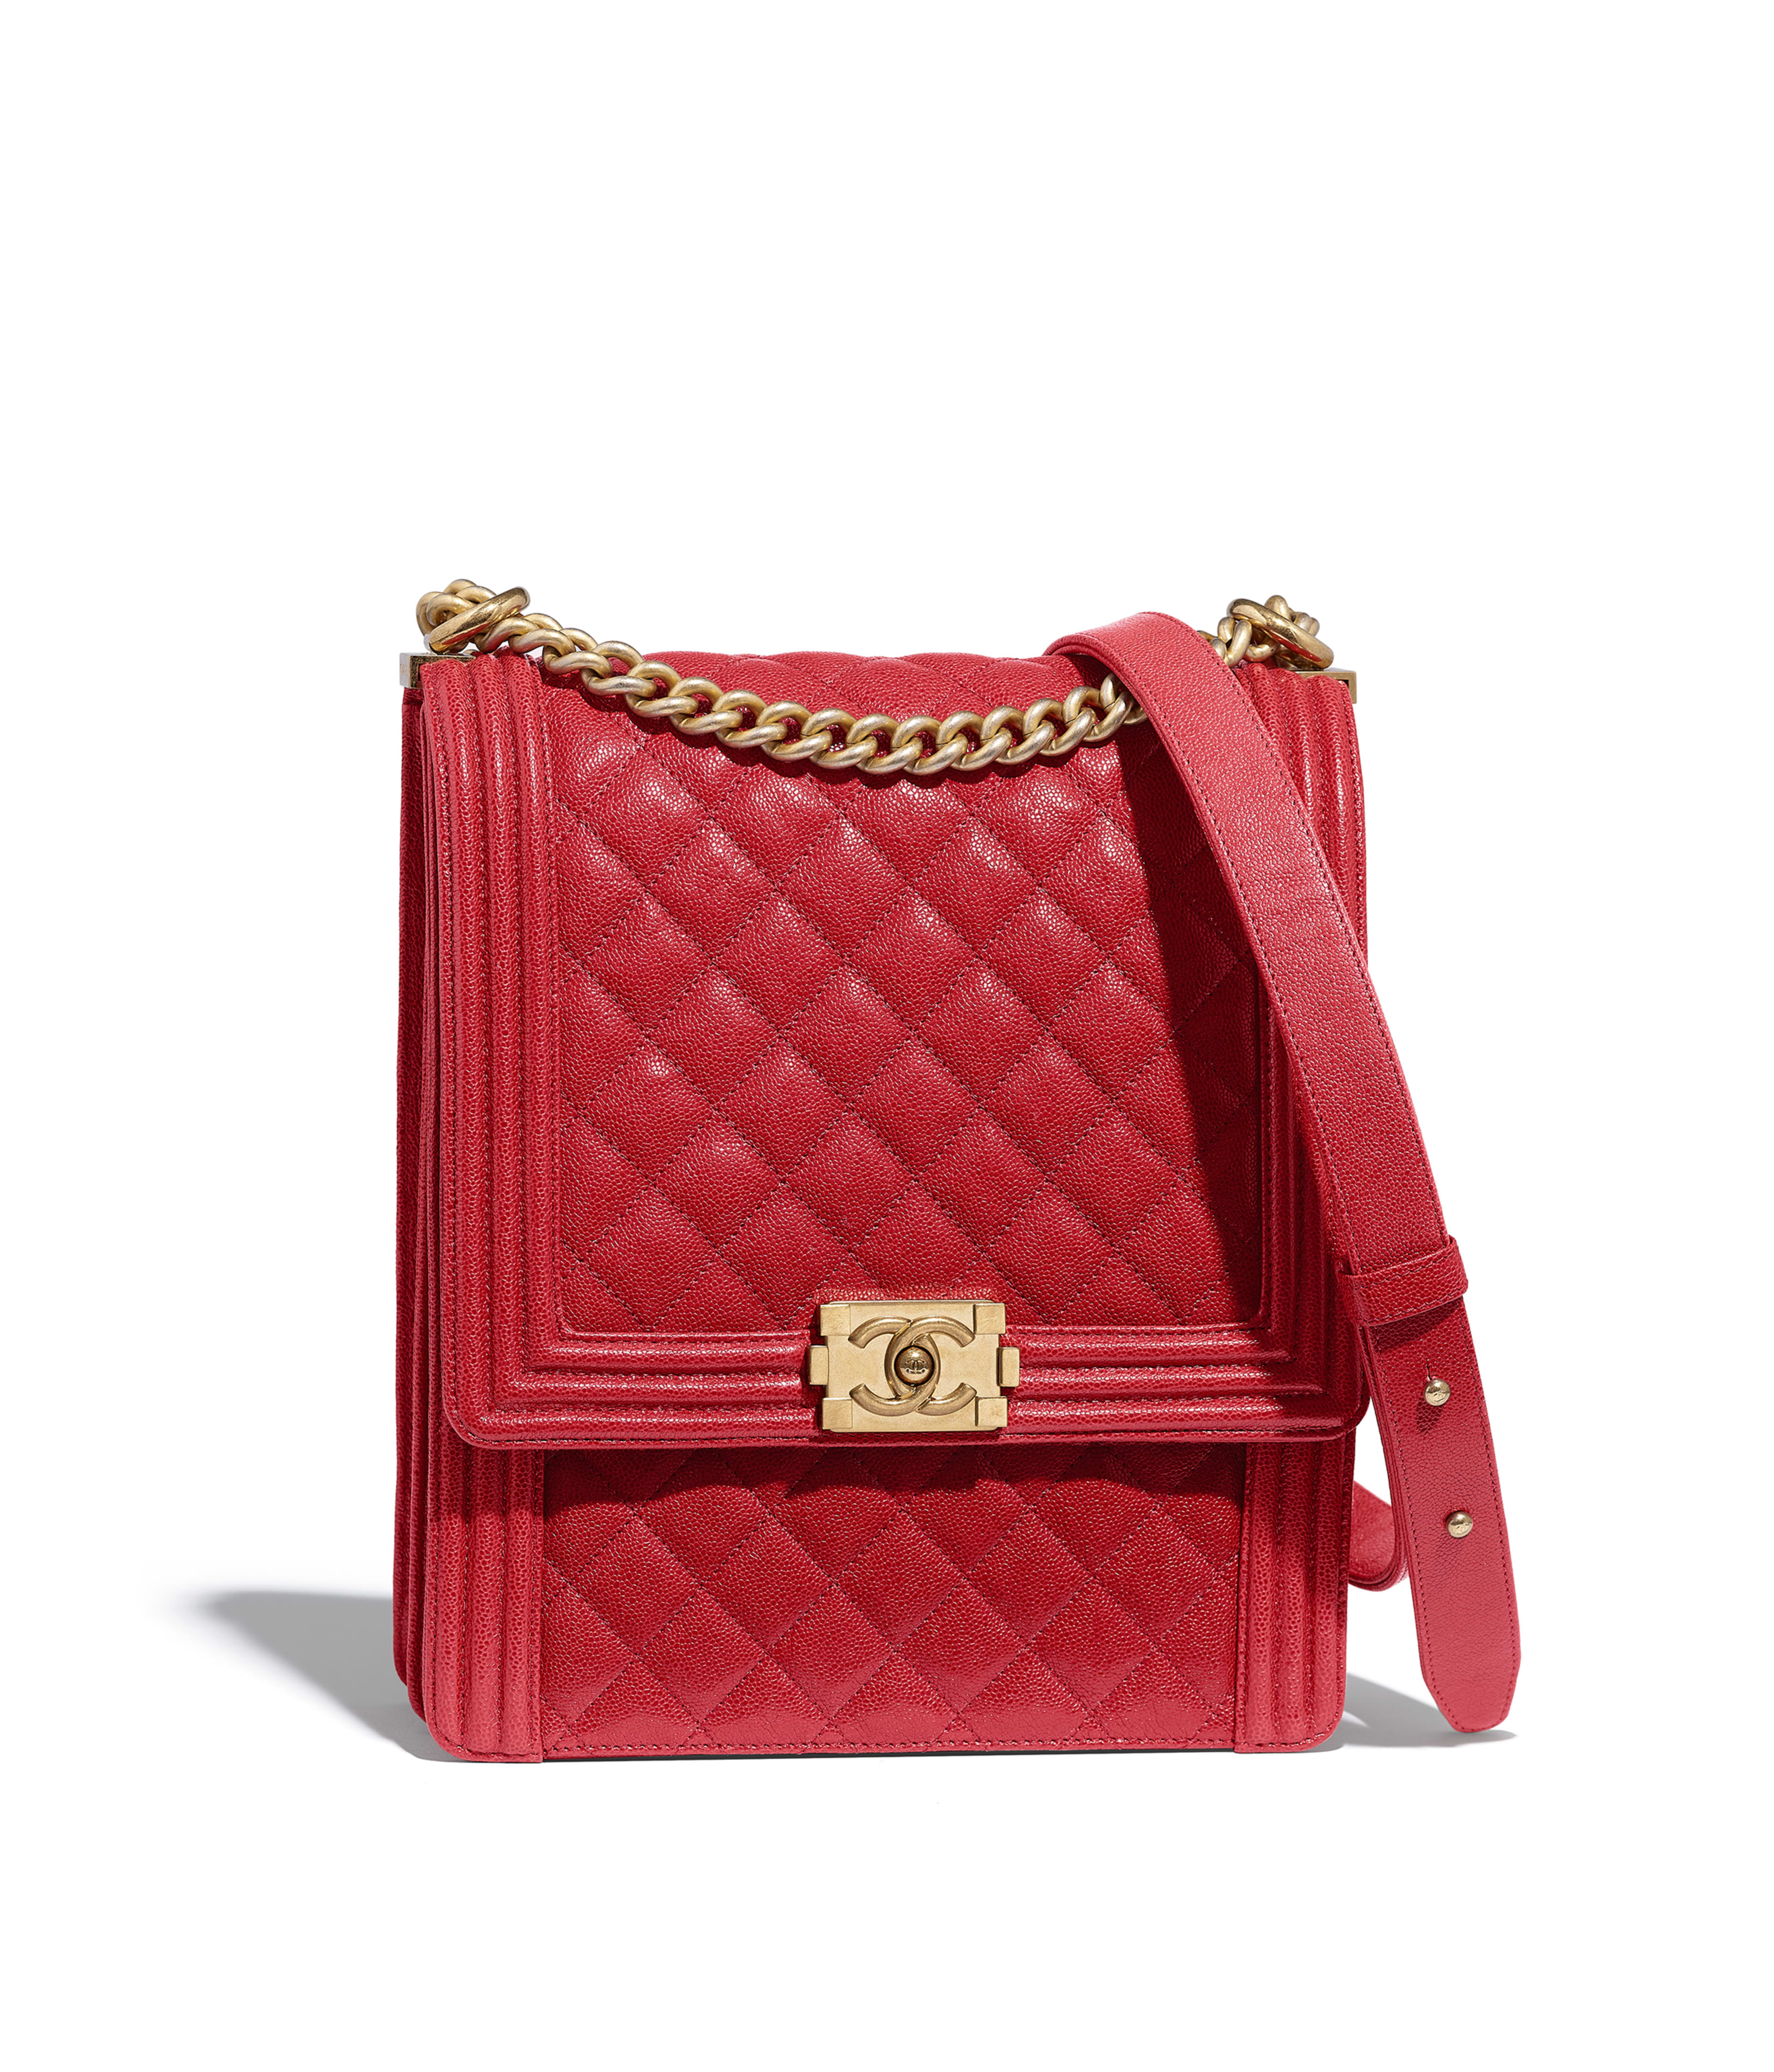 e4108349944a Large BOY CHANEL Handbag Grained Calfskin & Gold-Tone Metal, Red Ref.  AS0132Y836215B652